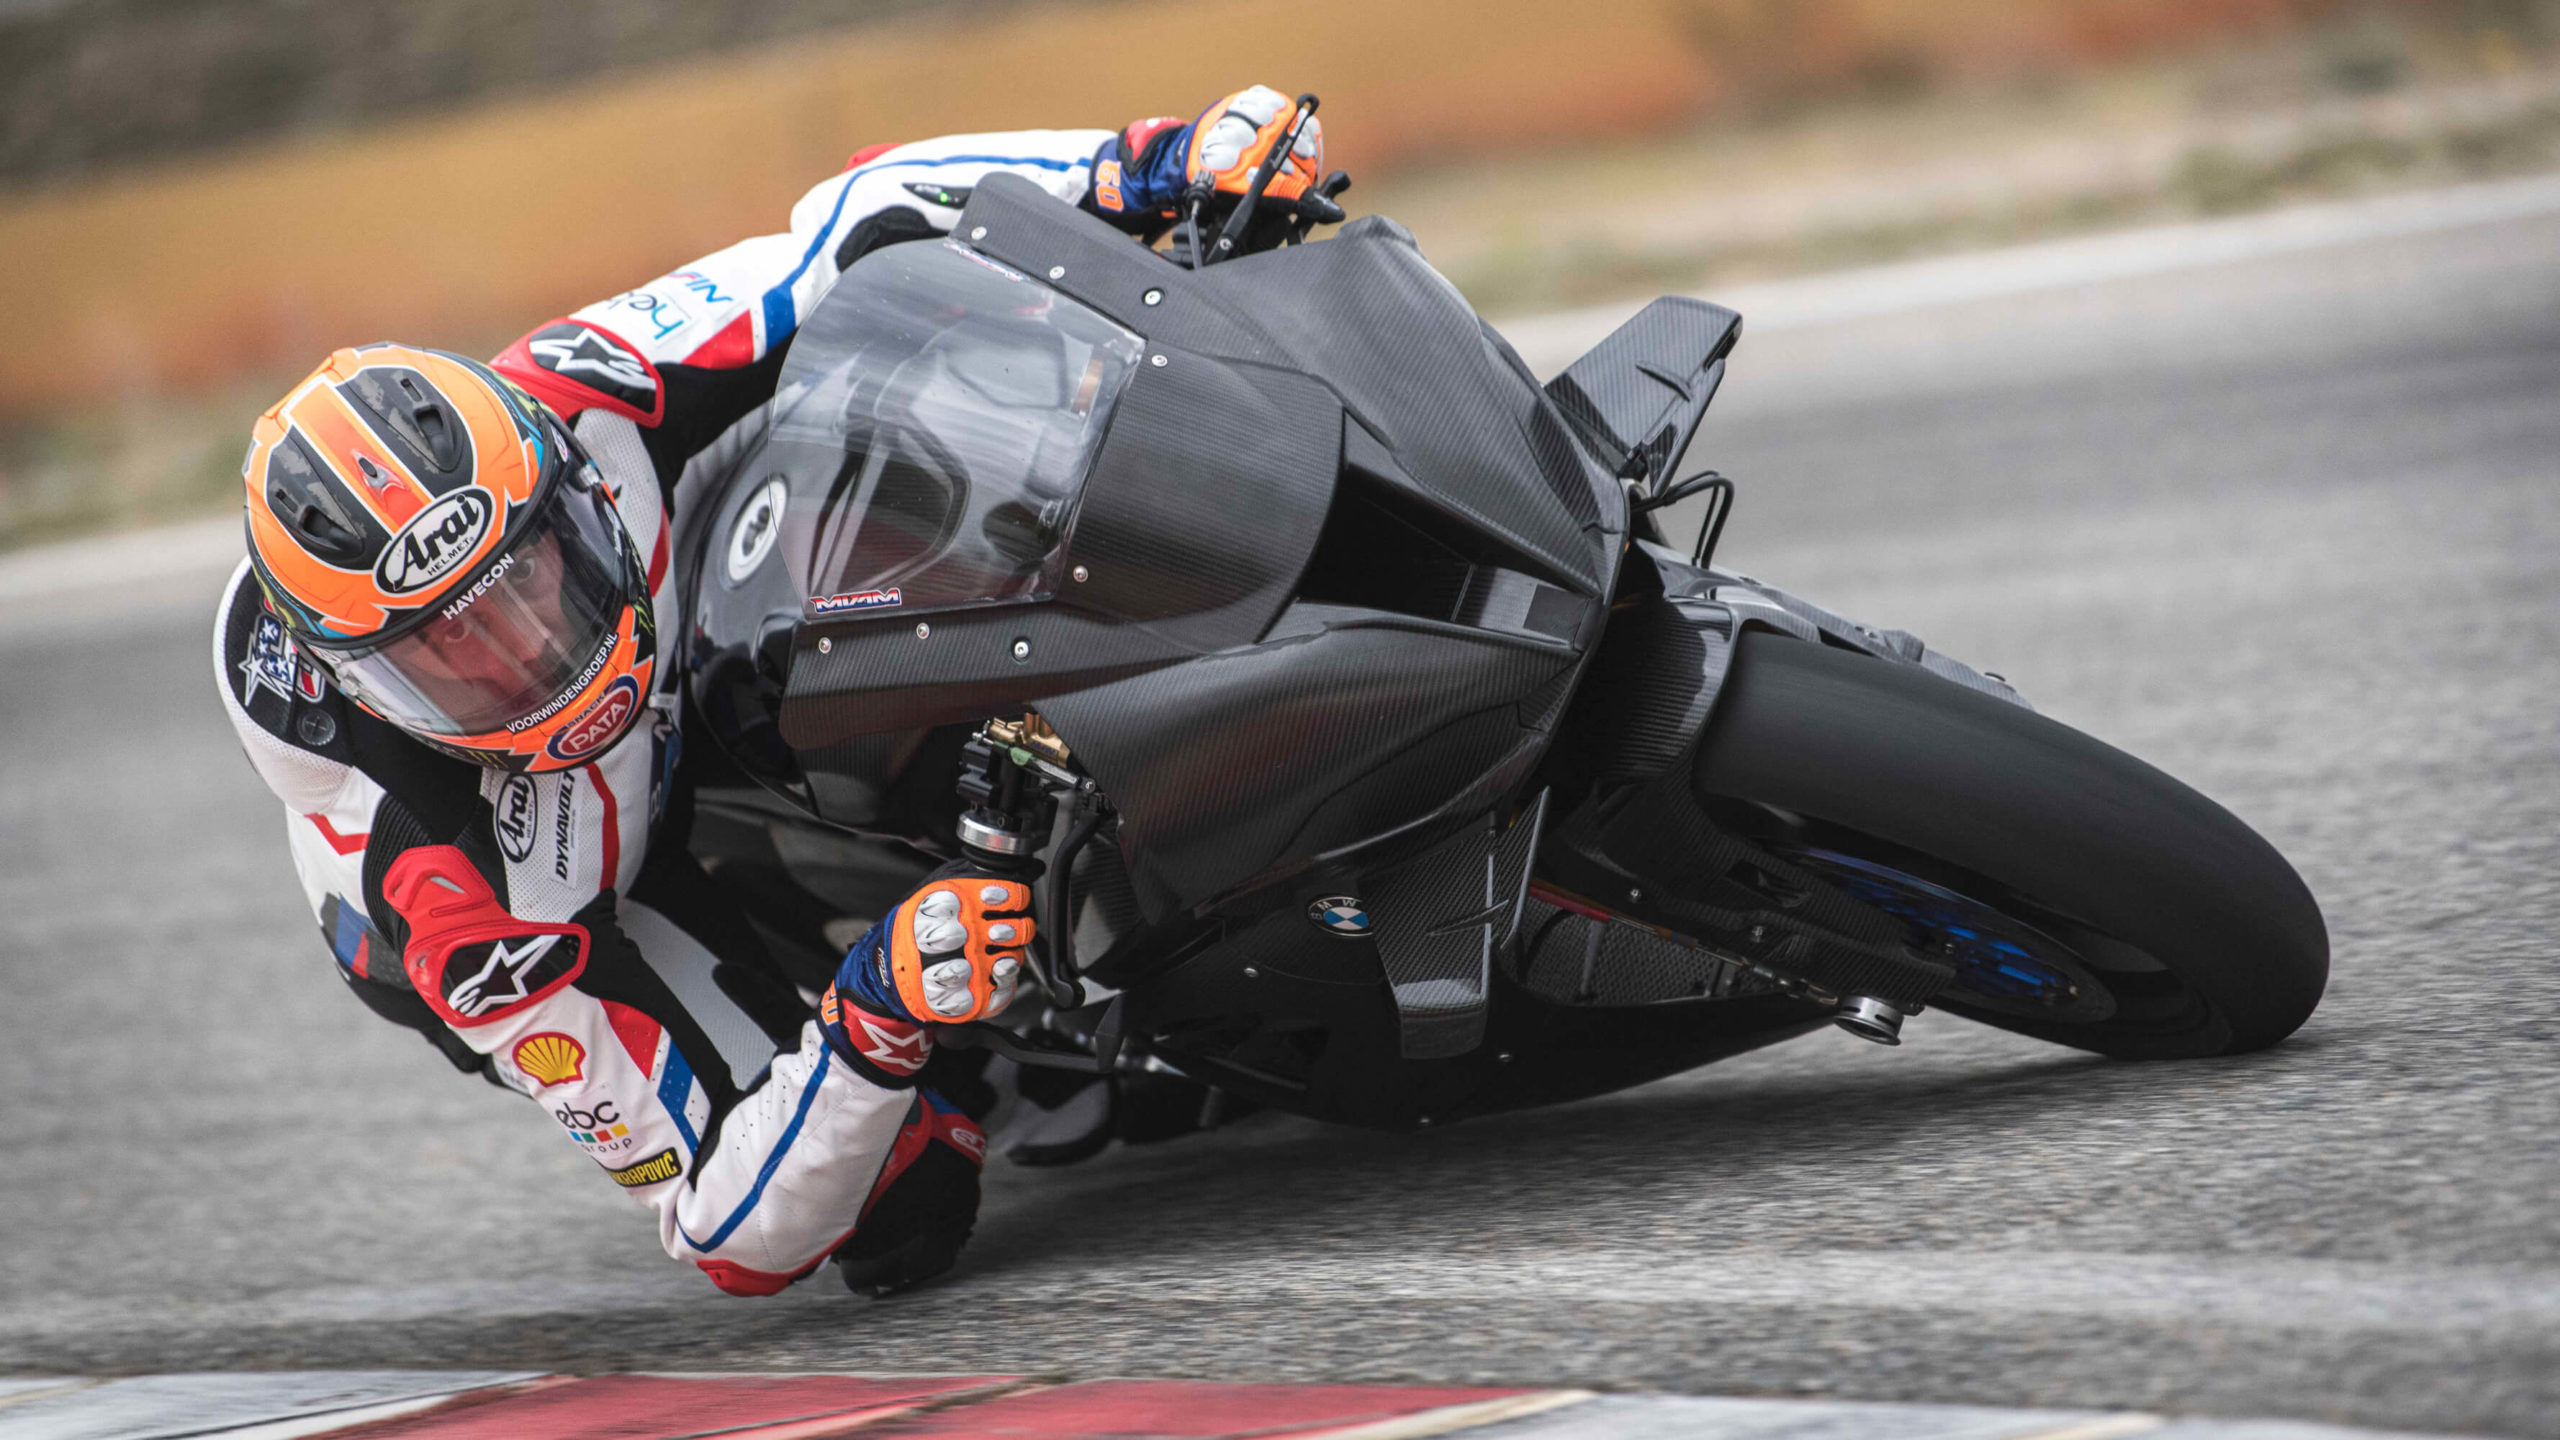 Michael_van_de_Mark_BMW_M_1000RR_2021_Xefun